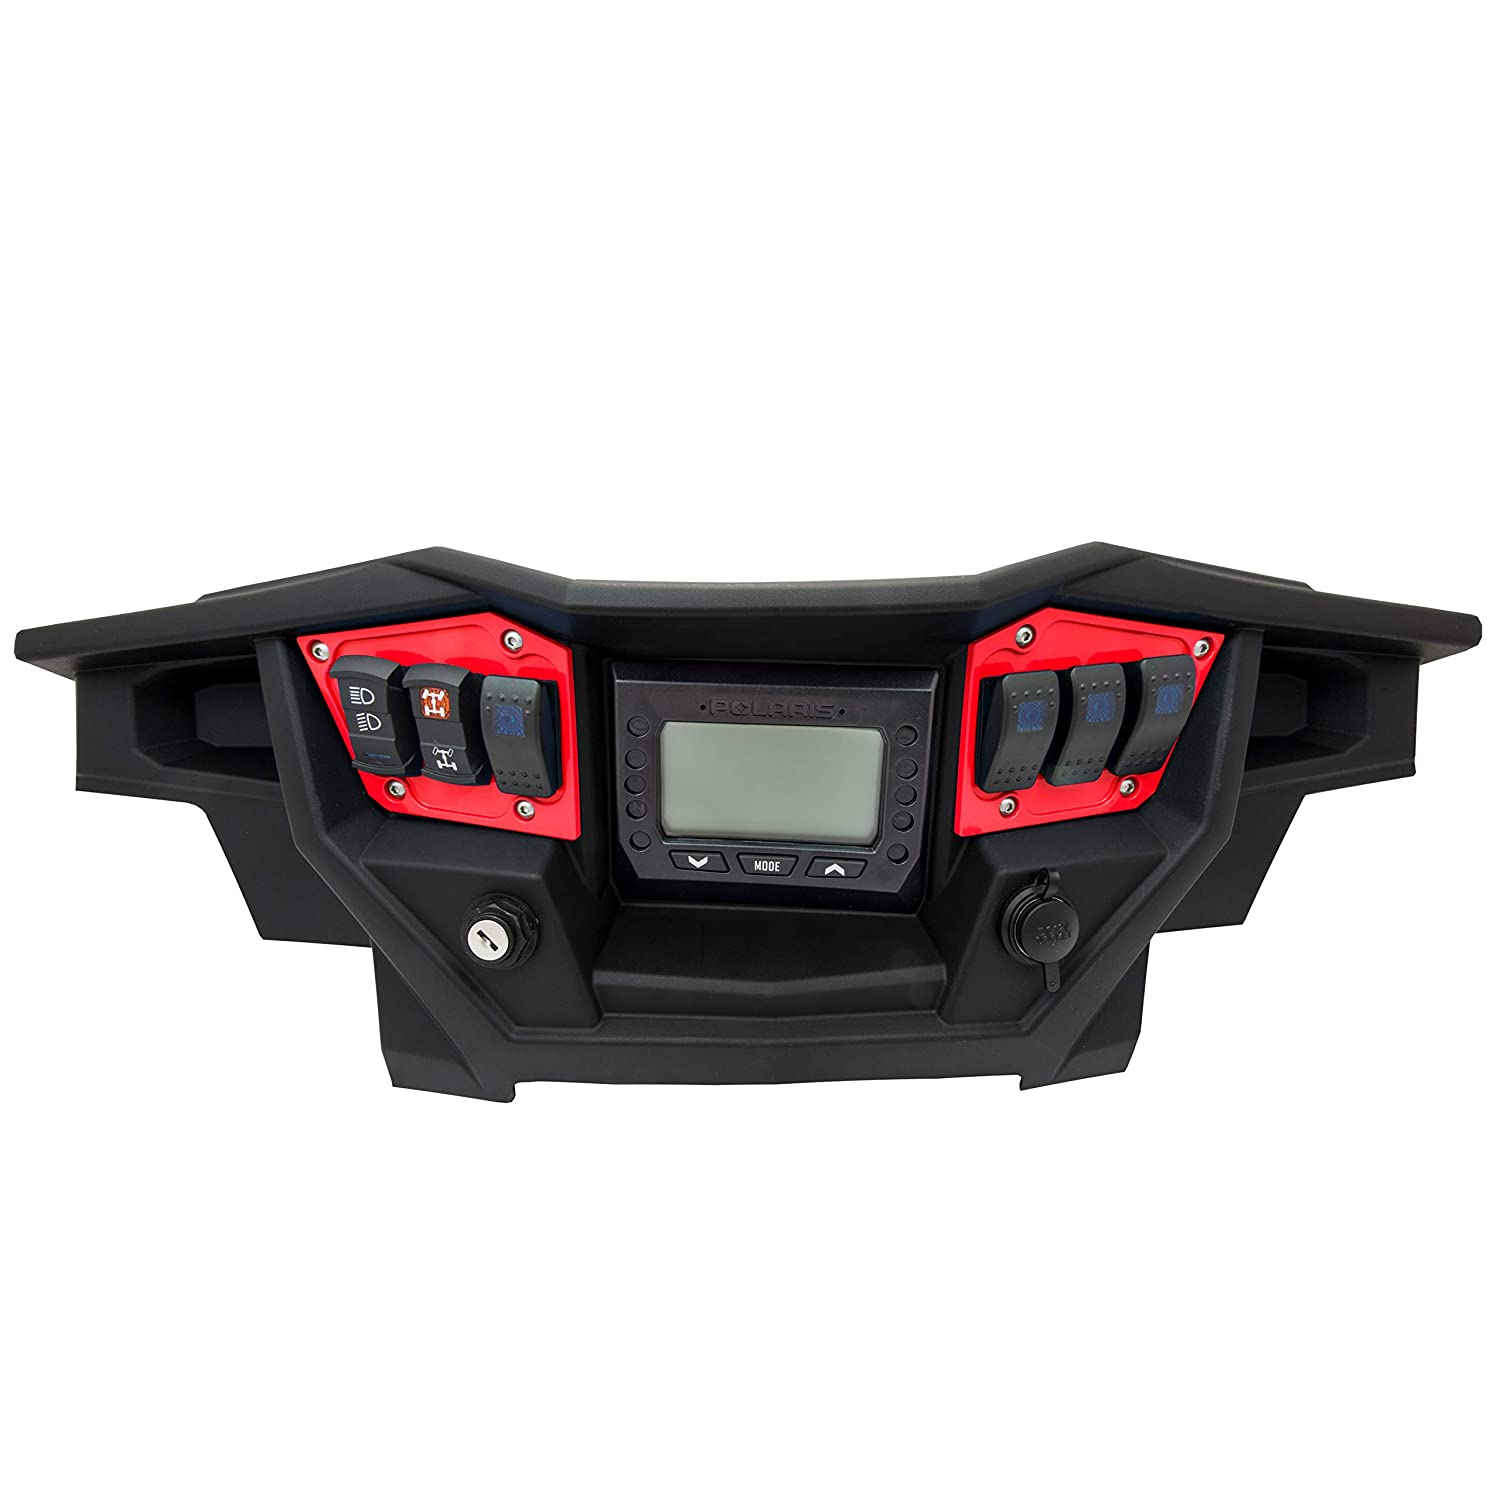 STVMotorsports SDP6GPS-FS Custom Aluminum Dash Panel for 2017-2018 Polaris RZR XP Turbo Edition with GPS Display Made 100/% in USA no switches Included Silver